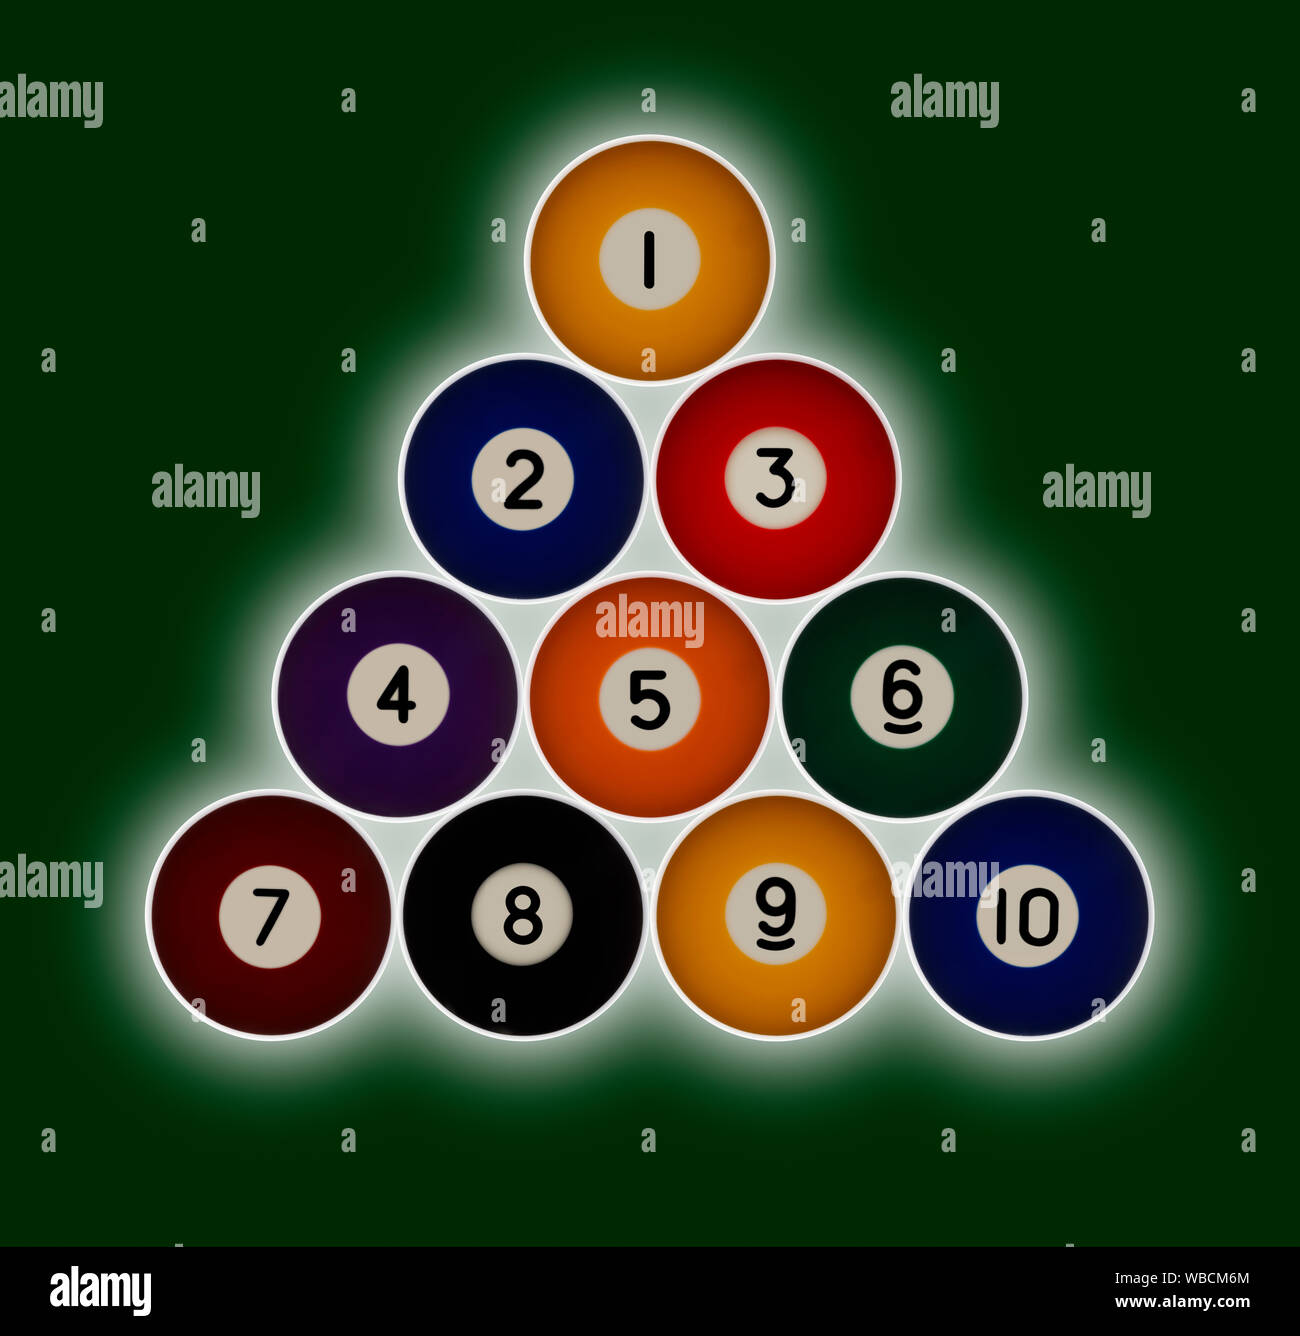 Pool balls numbered 1-10 in a triangle formation on a green background with a hallow glow behind Stock Photo